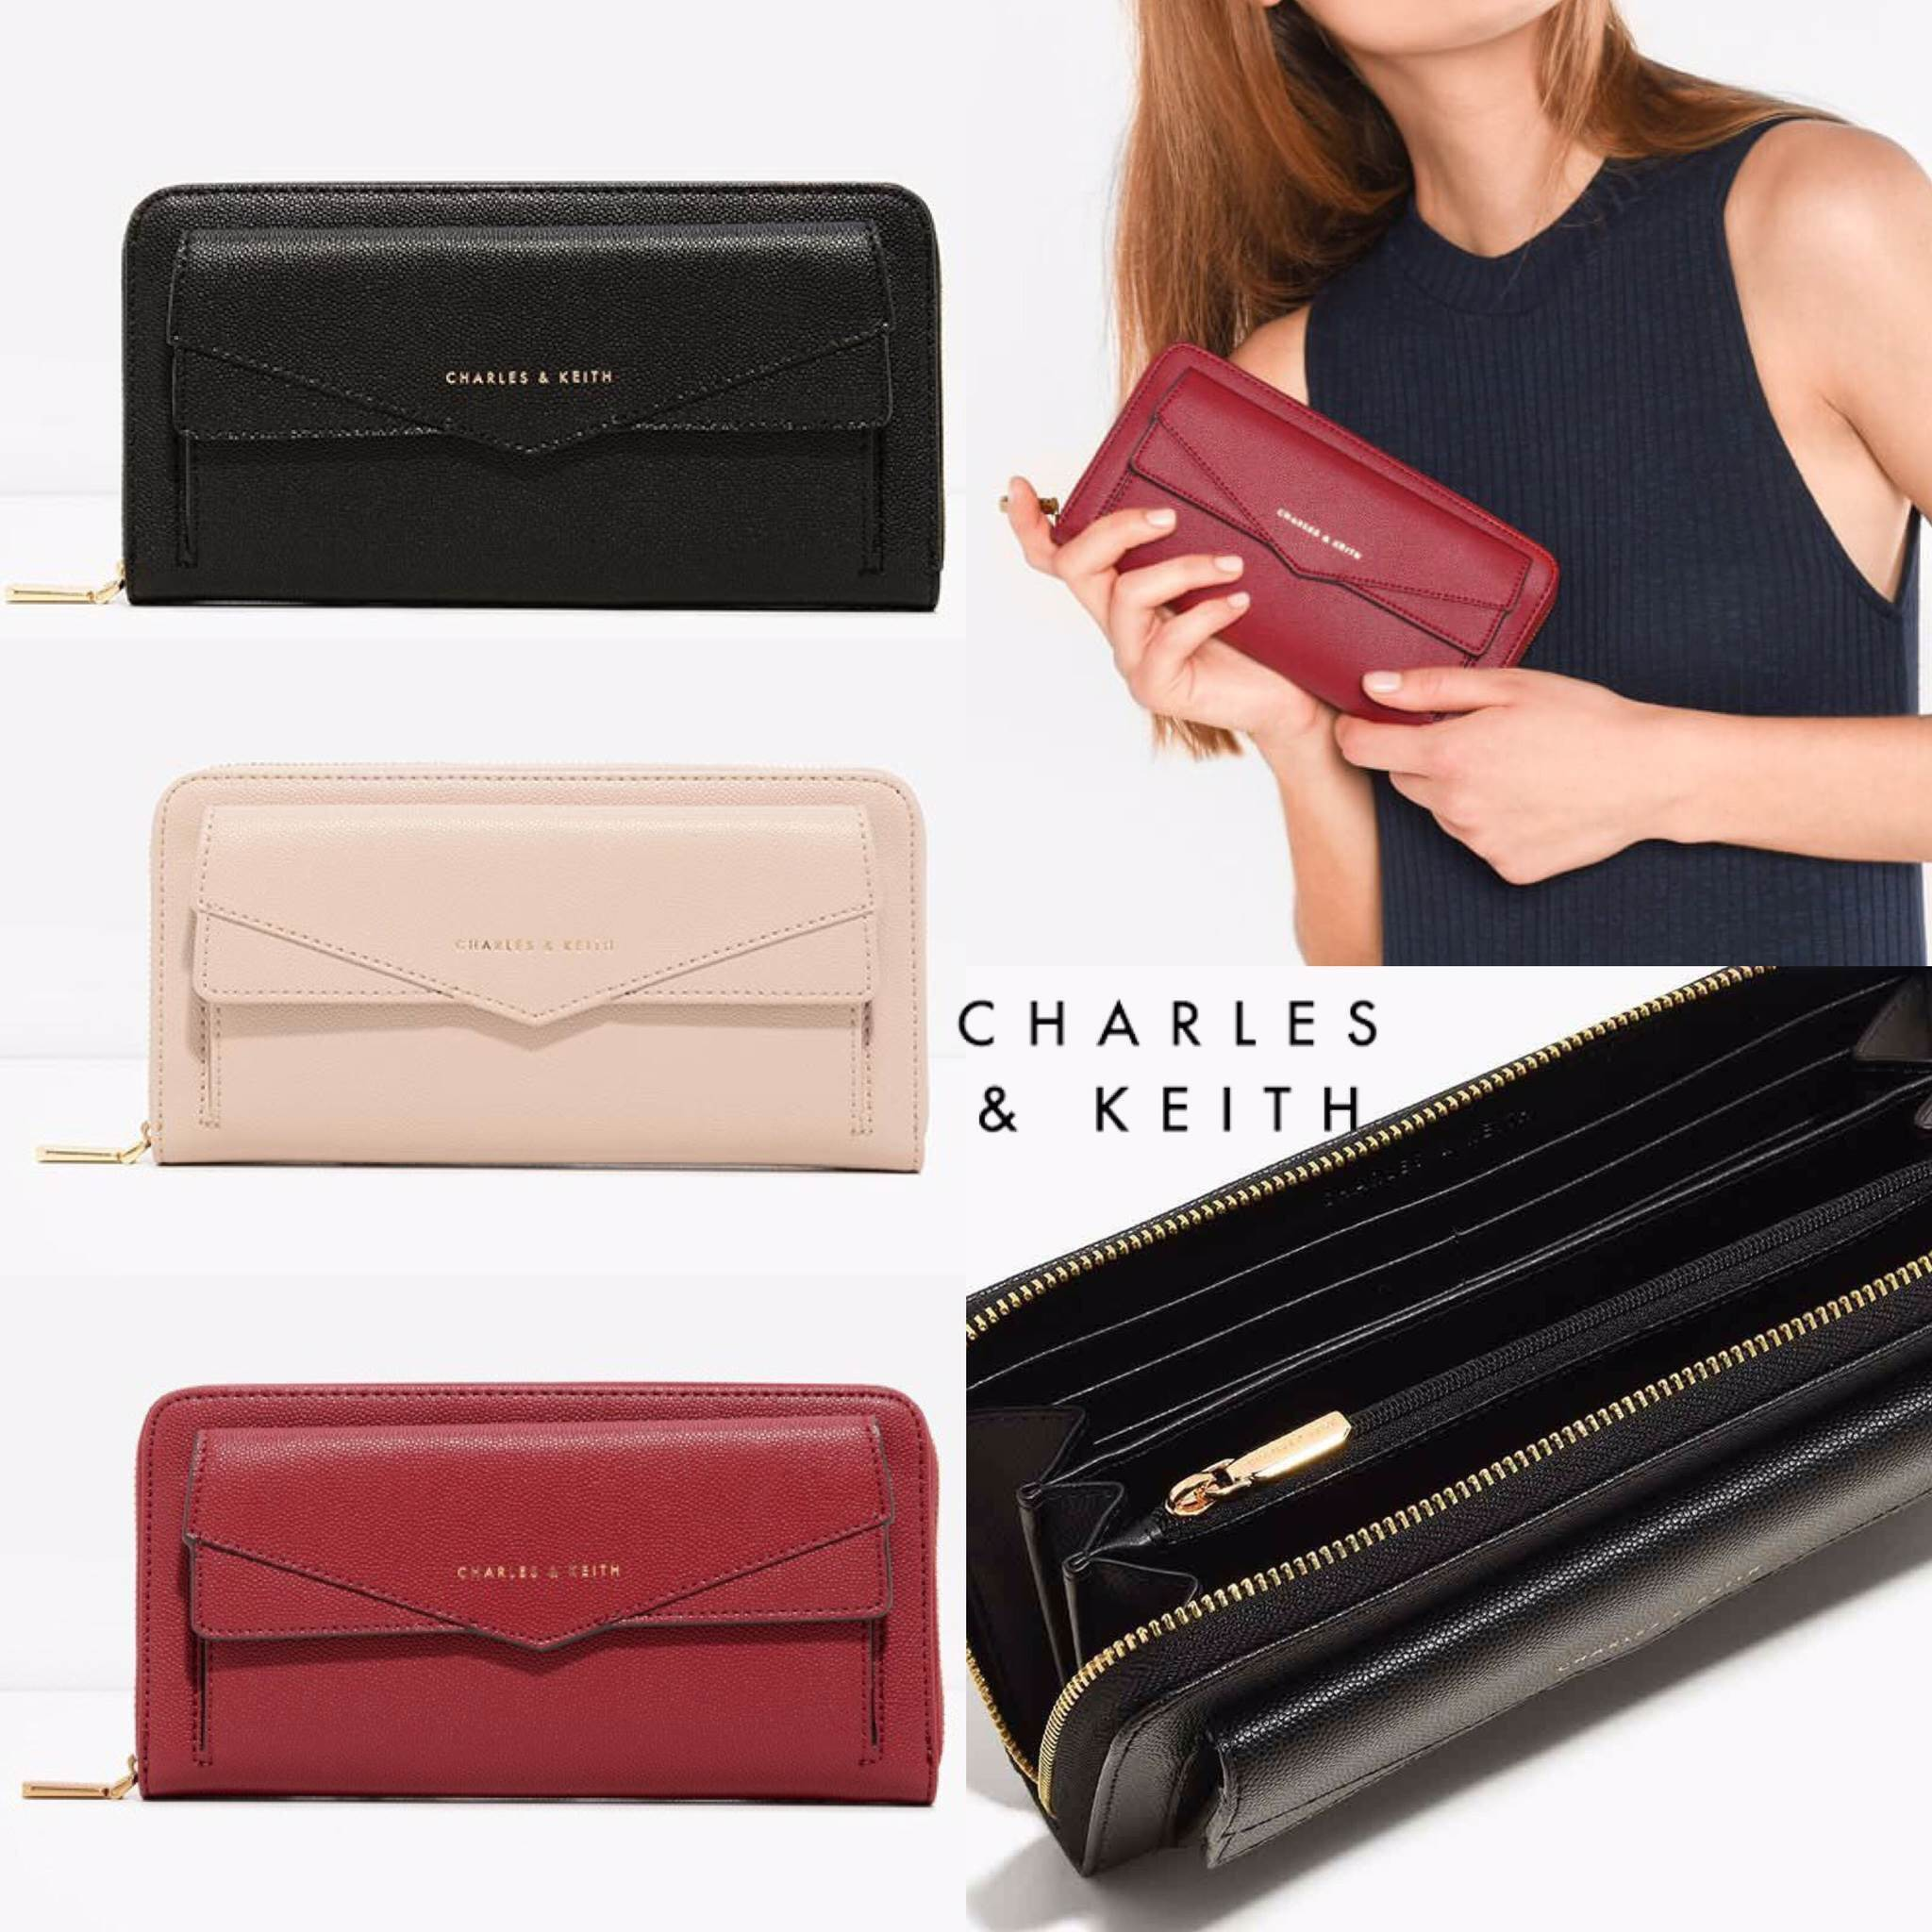 CHARLES & KEITH DUO-CLOSURE WALLET 2017